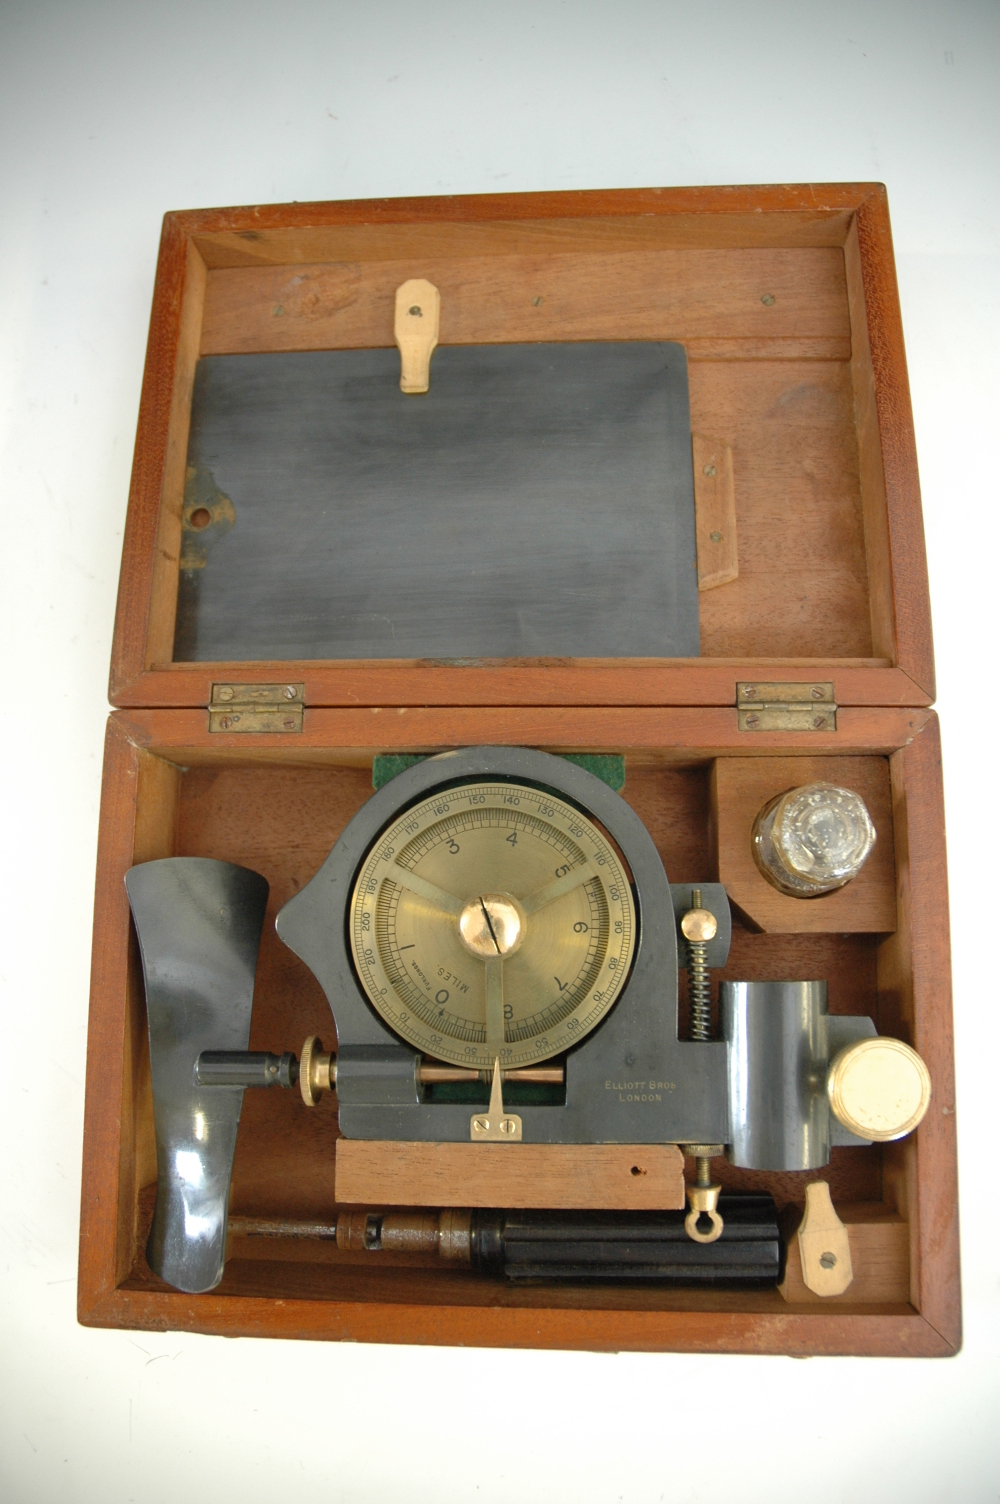 preview image for Water Current Meter and case, by Elliott Brothers, London, 19th Century